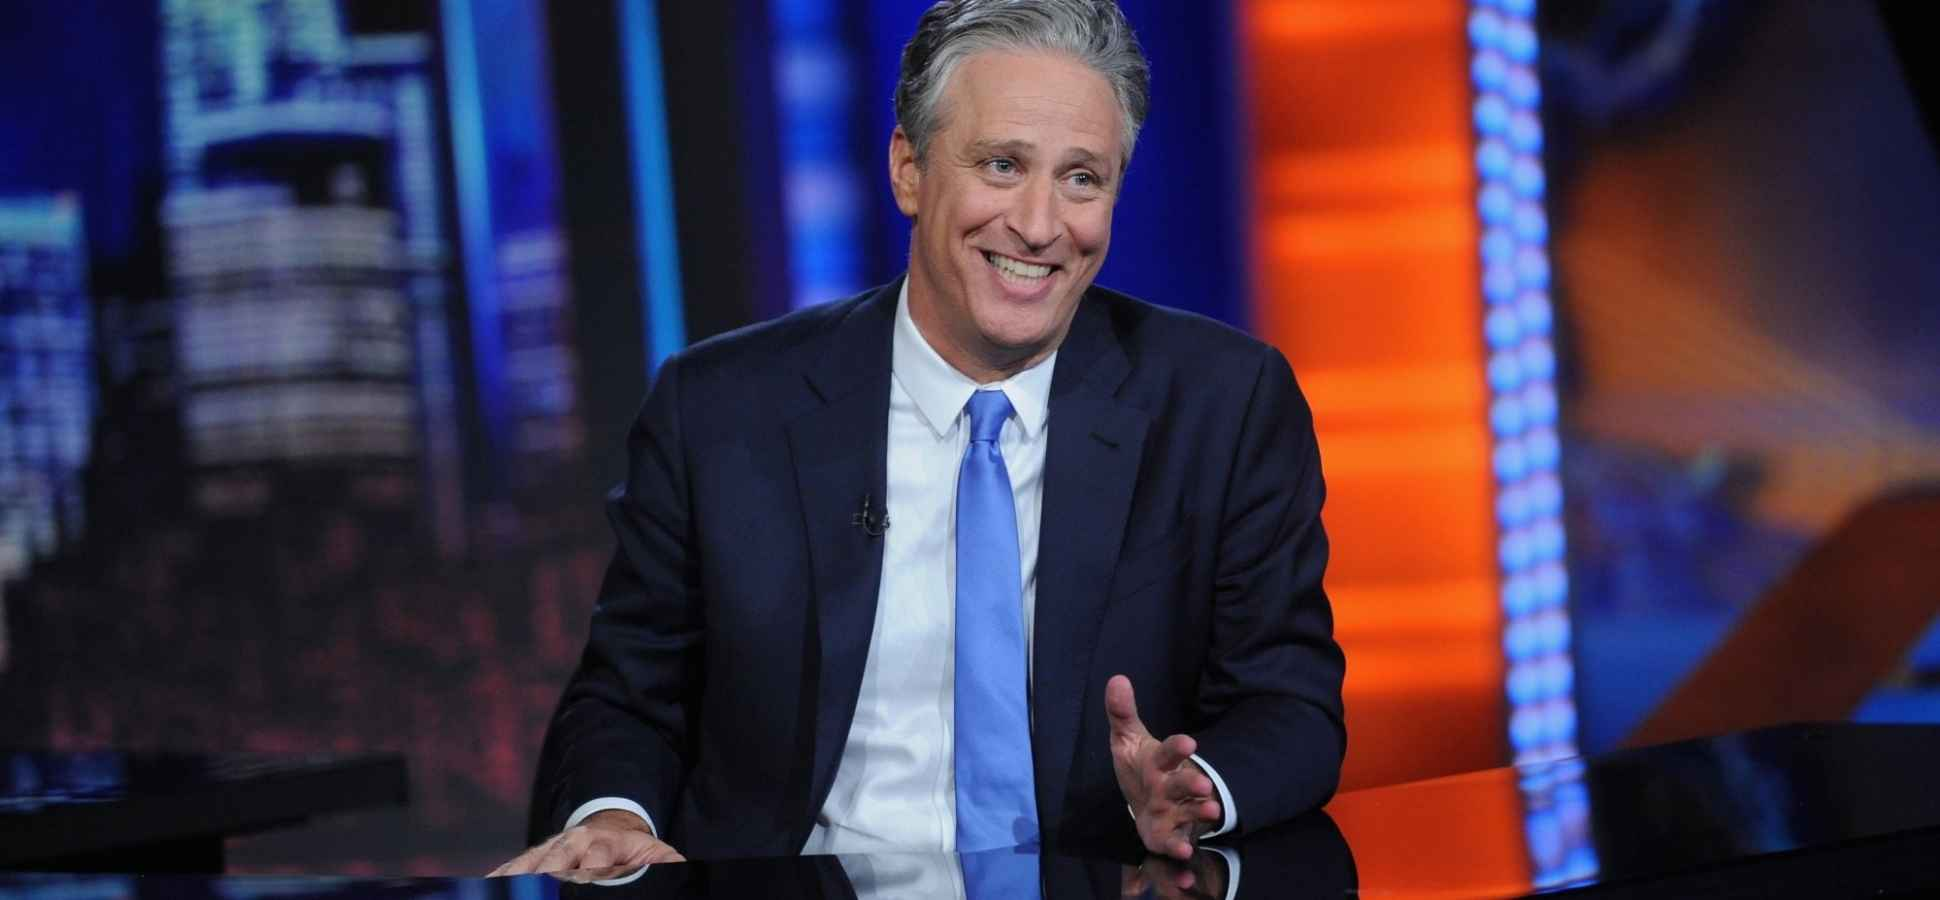 18 Jon Stewart Quotes to Restore Your Sanity and Make You Laugh